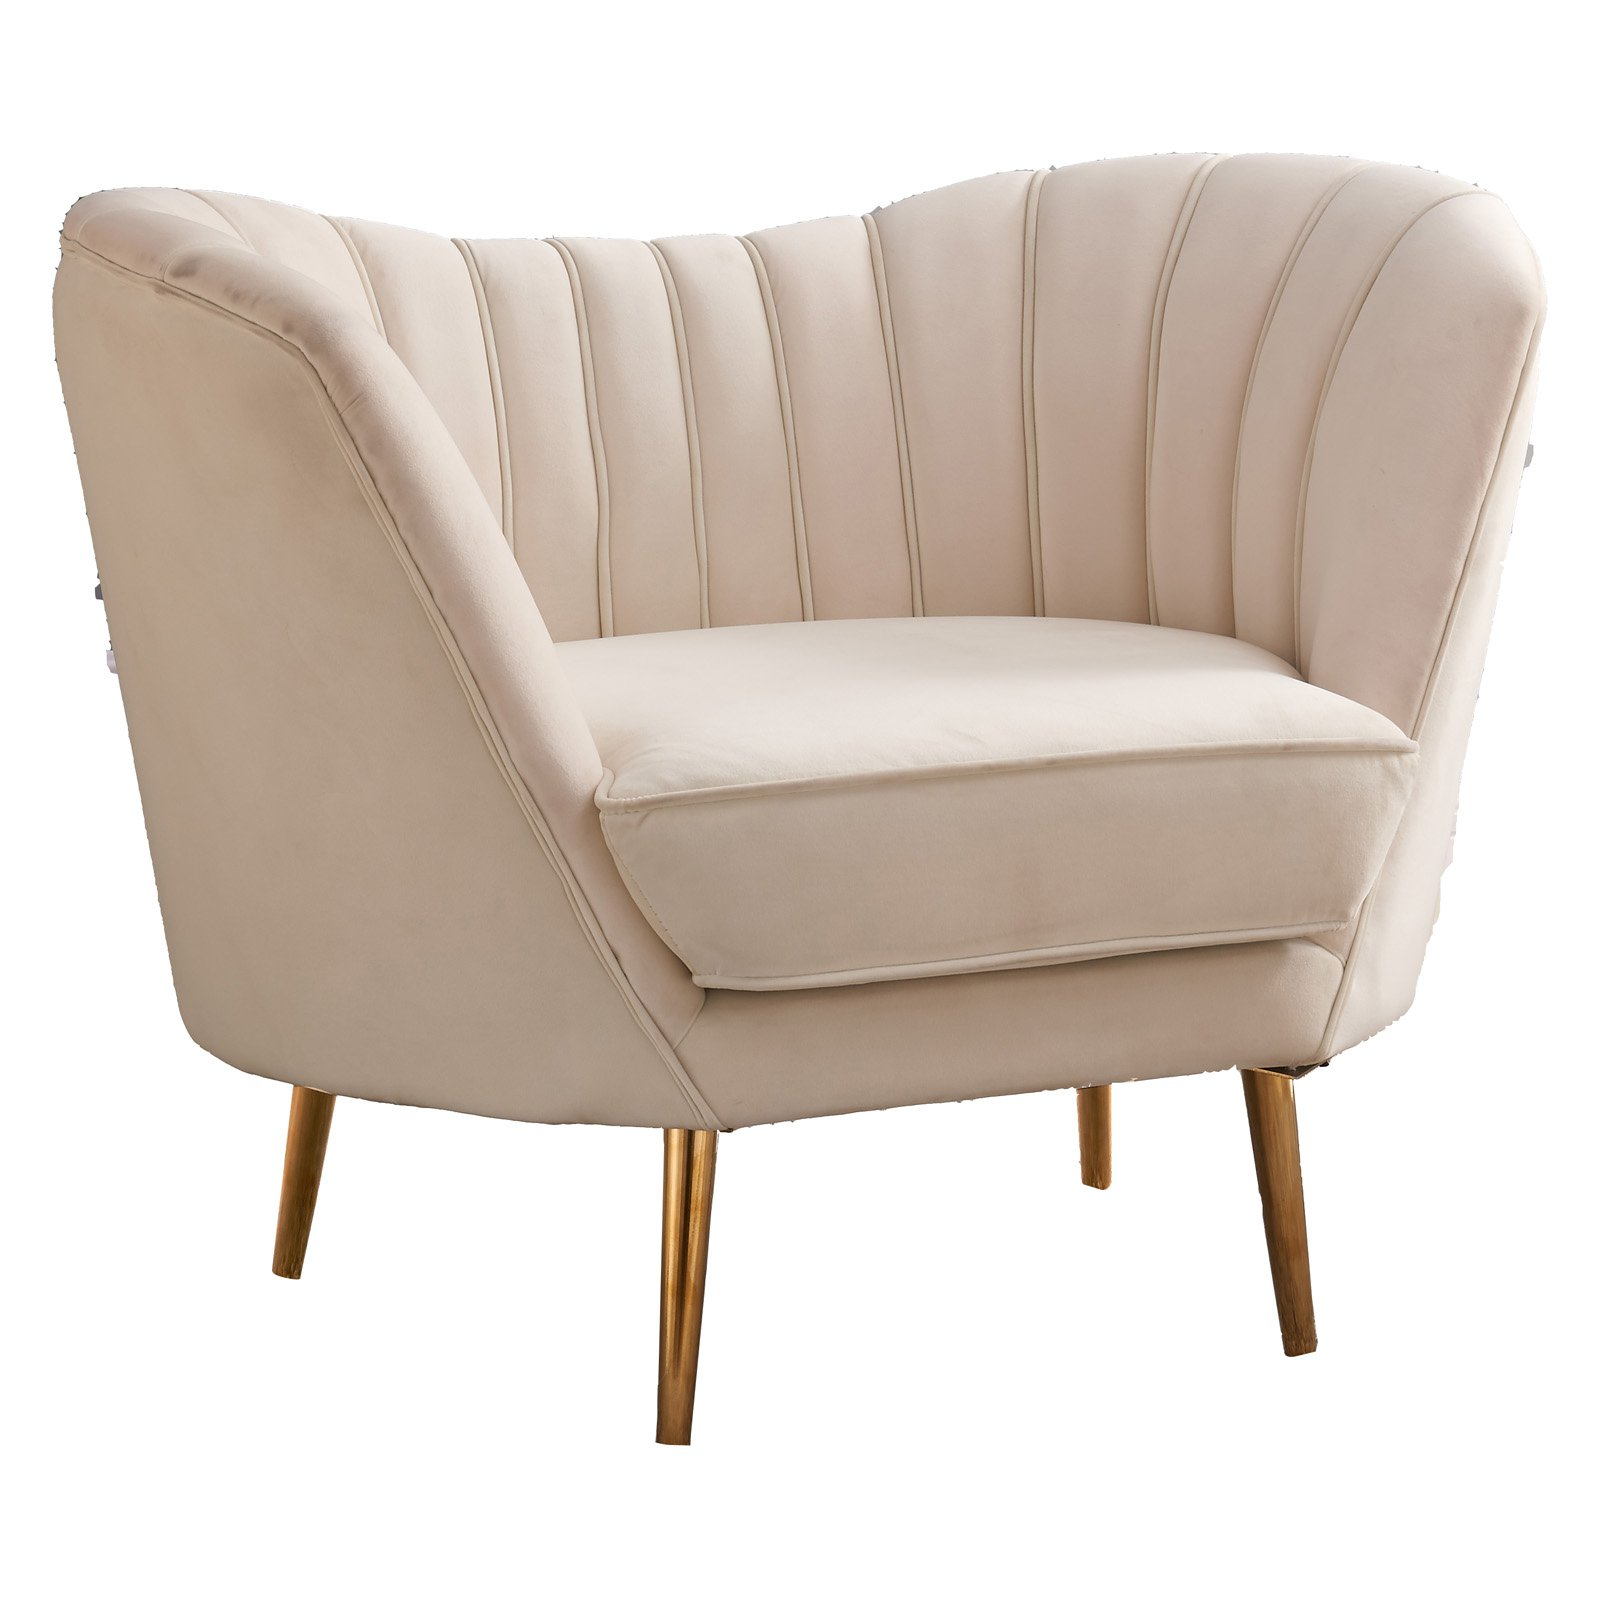 Meridian Furniture Inc Margo Velvet Chair Cream In 2019